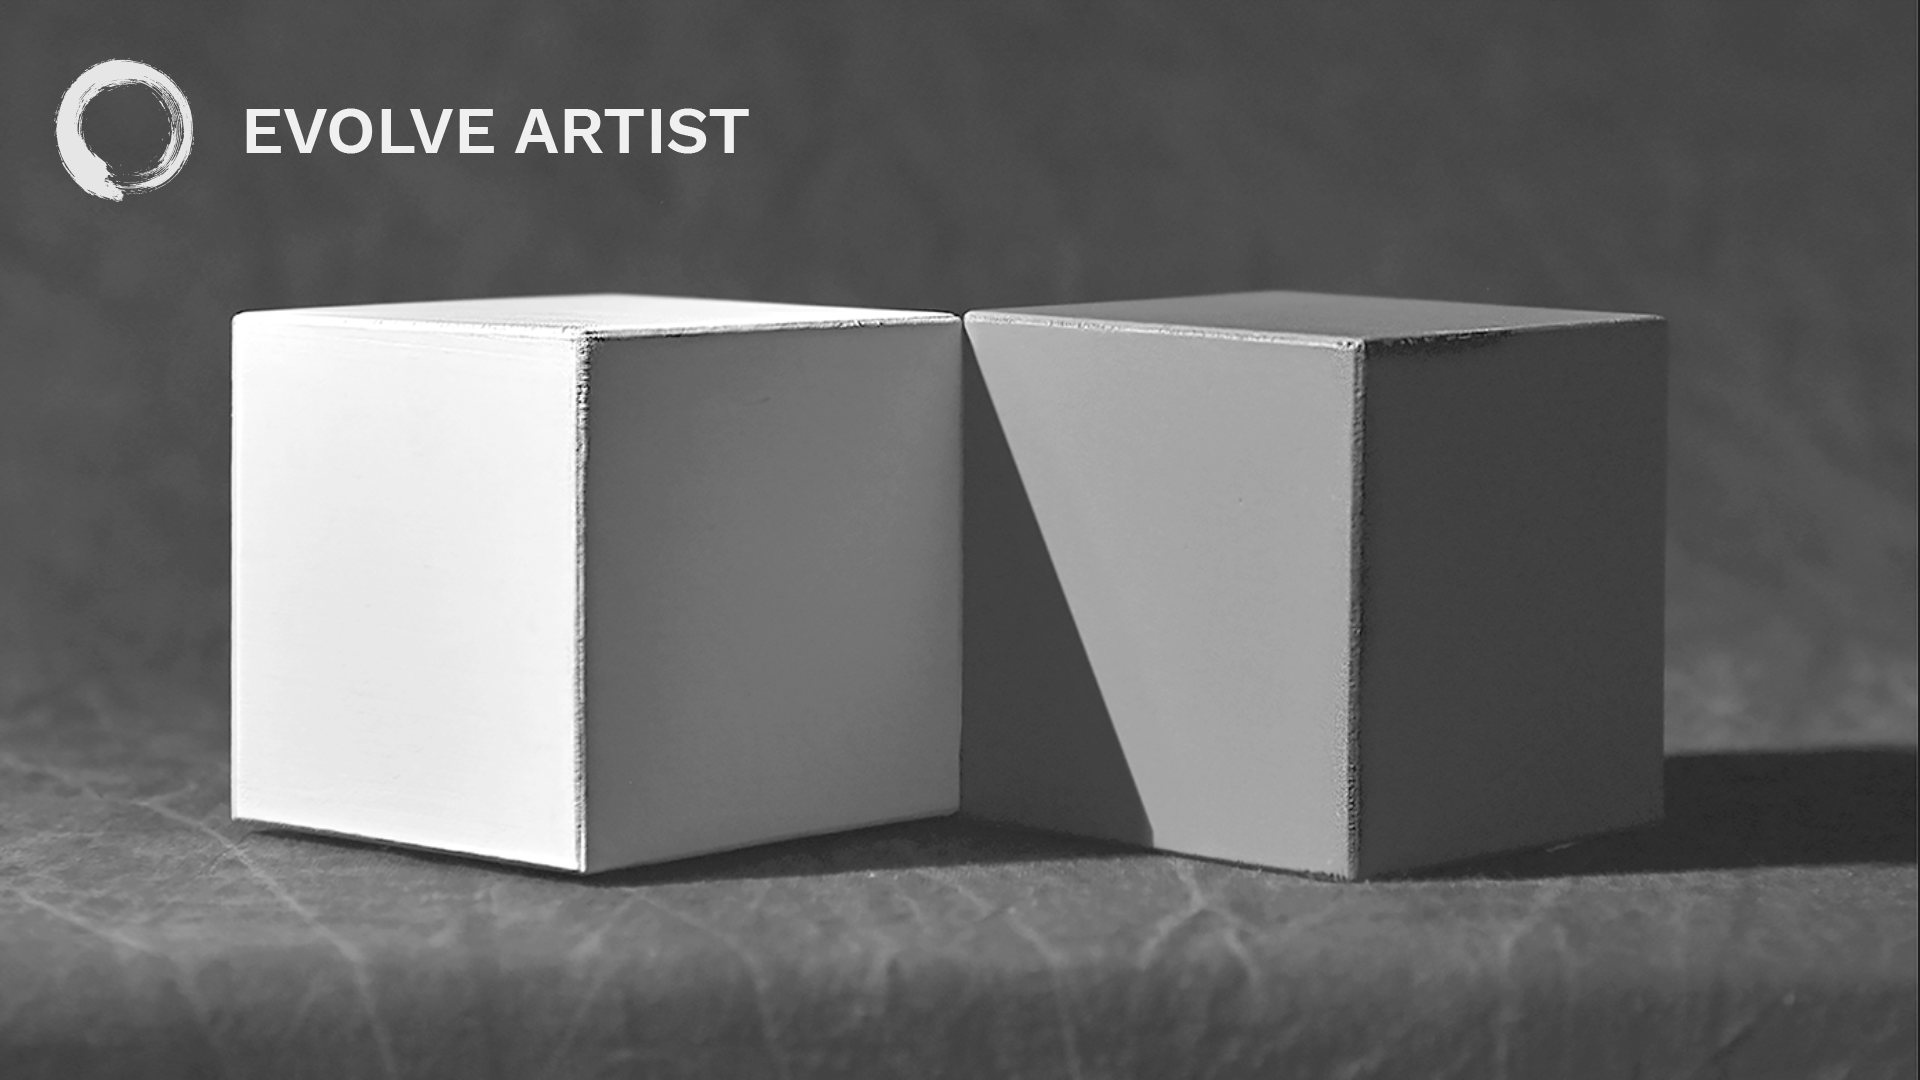 A photo of a white cube and a gray cube depicts values in art.